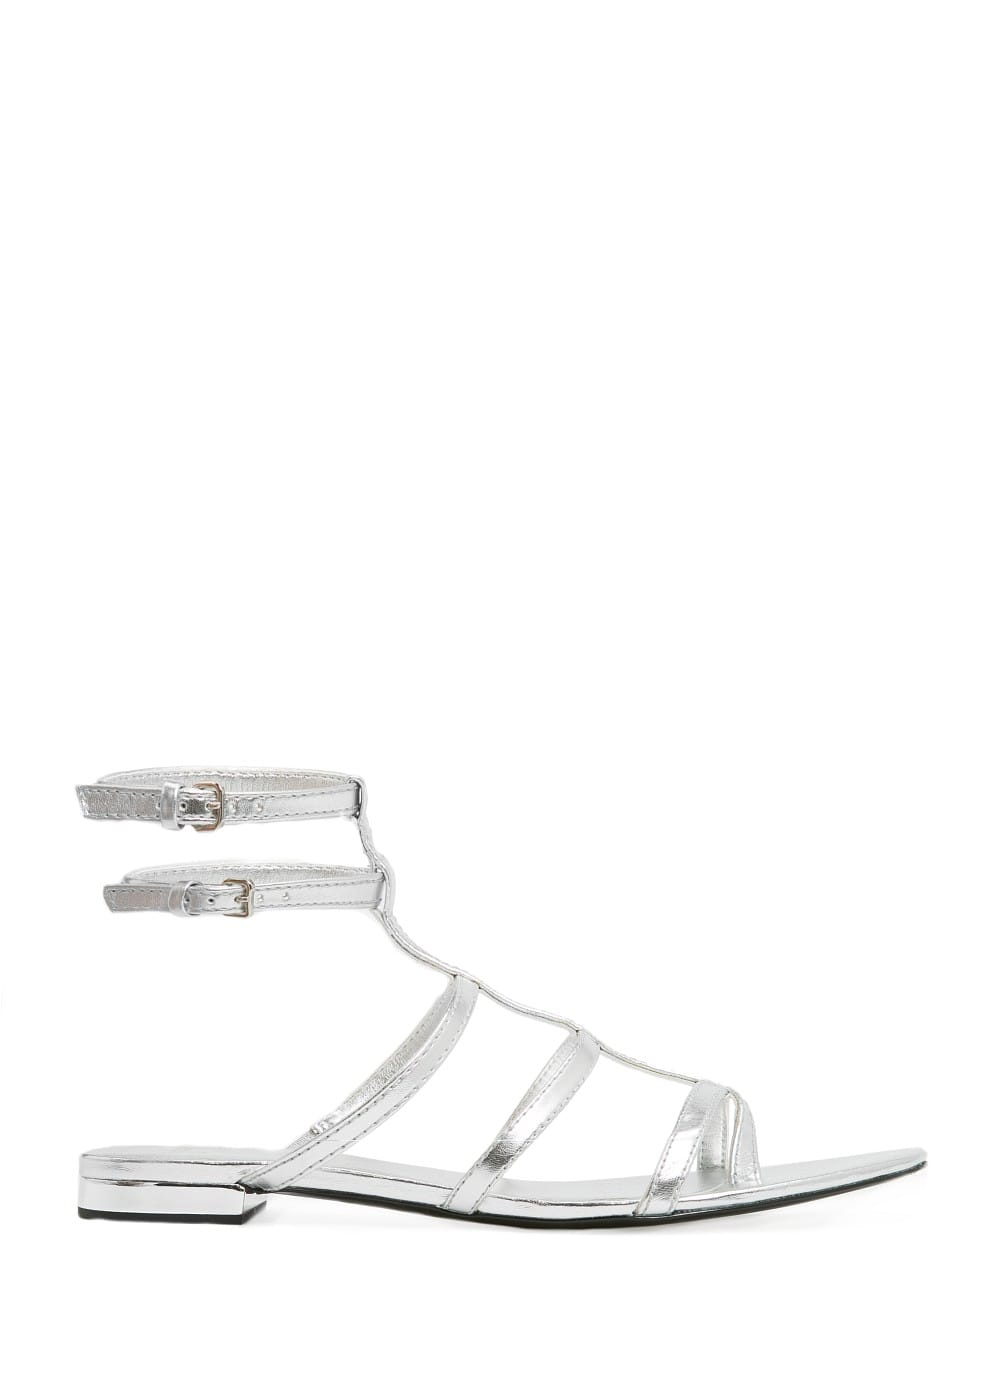 Metallic strappy sandals